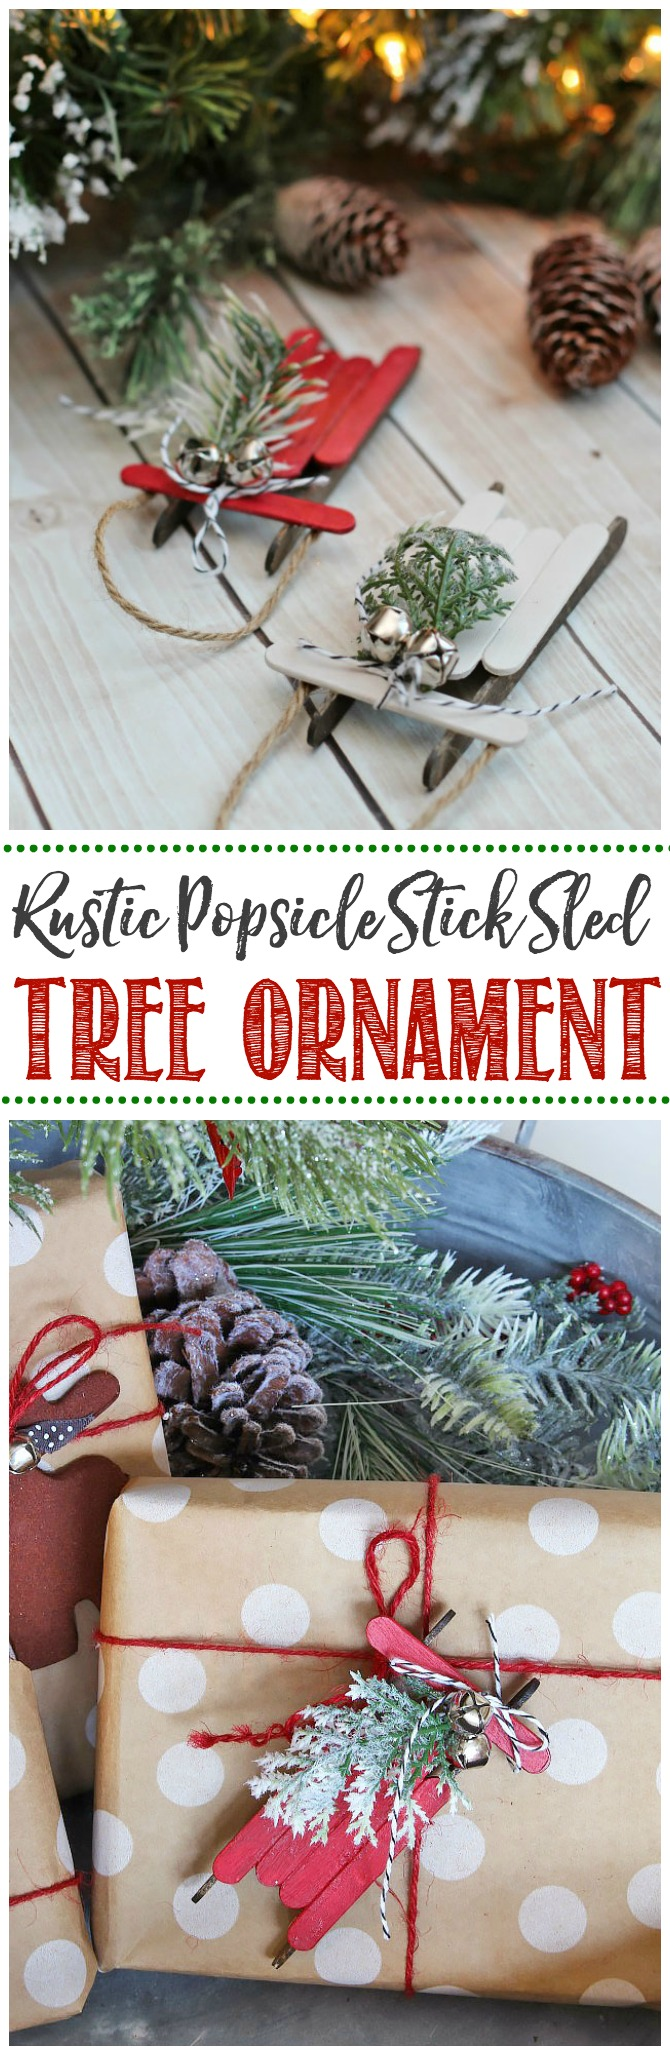 These rustic popsicle stick sleds are so pretty. They're an easy DIY Christmas tree ornament that and are so much fun to make!